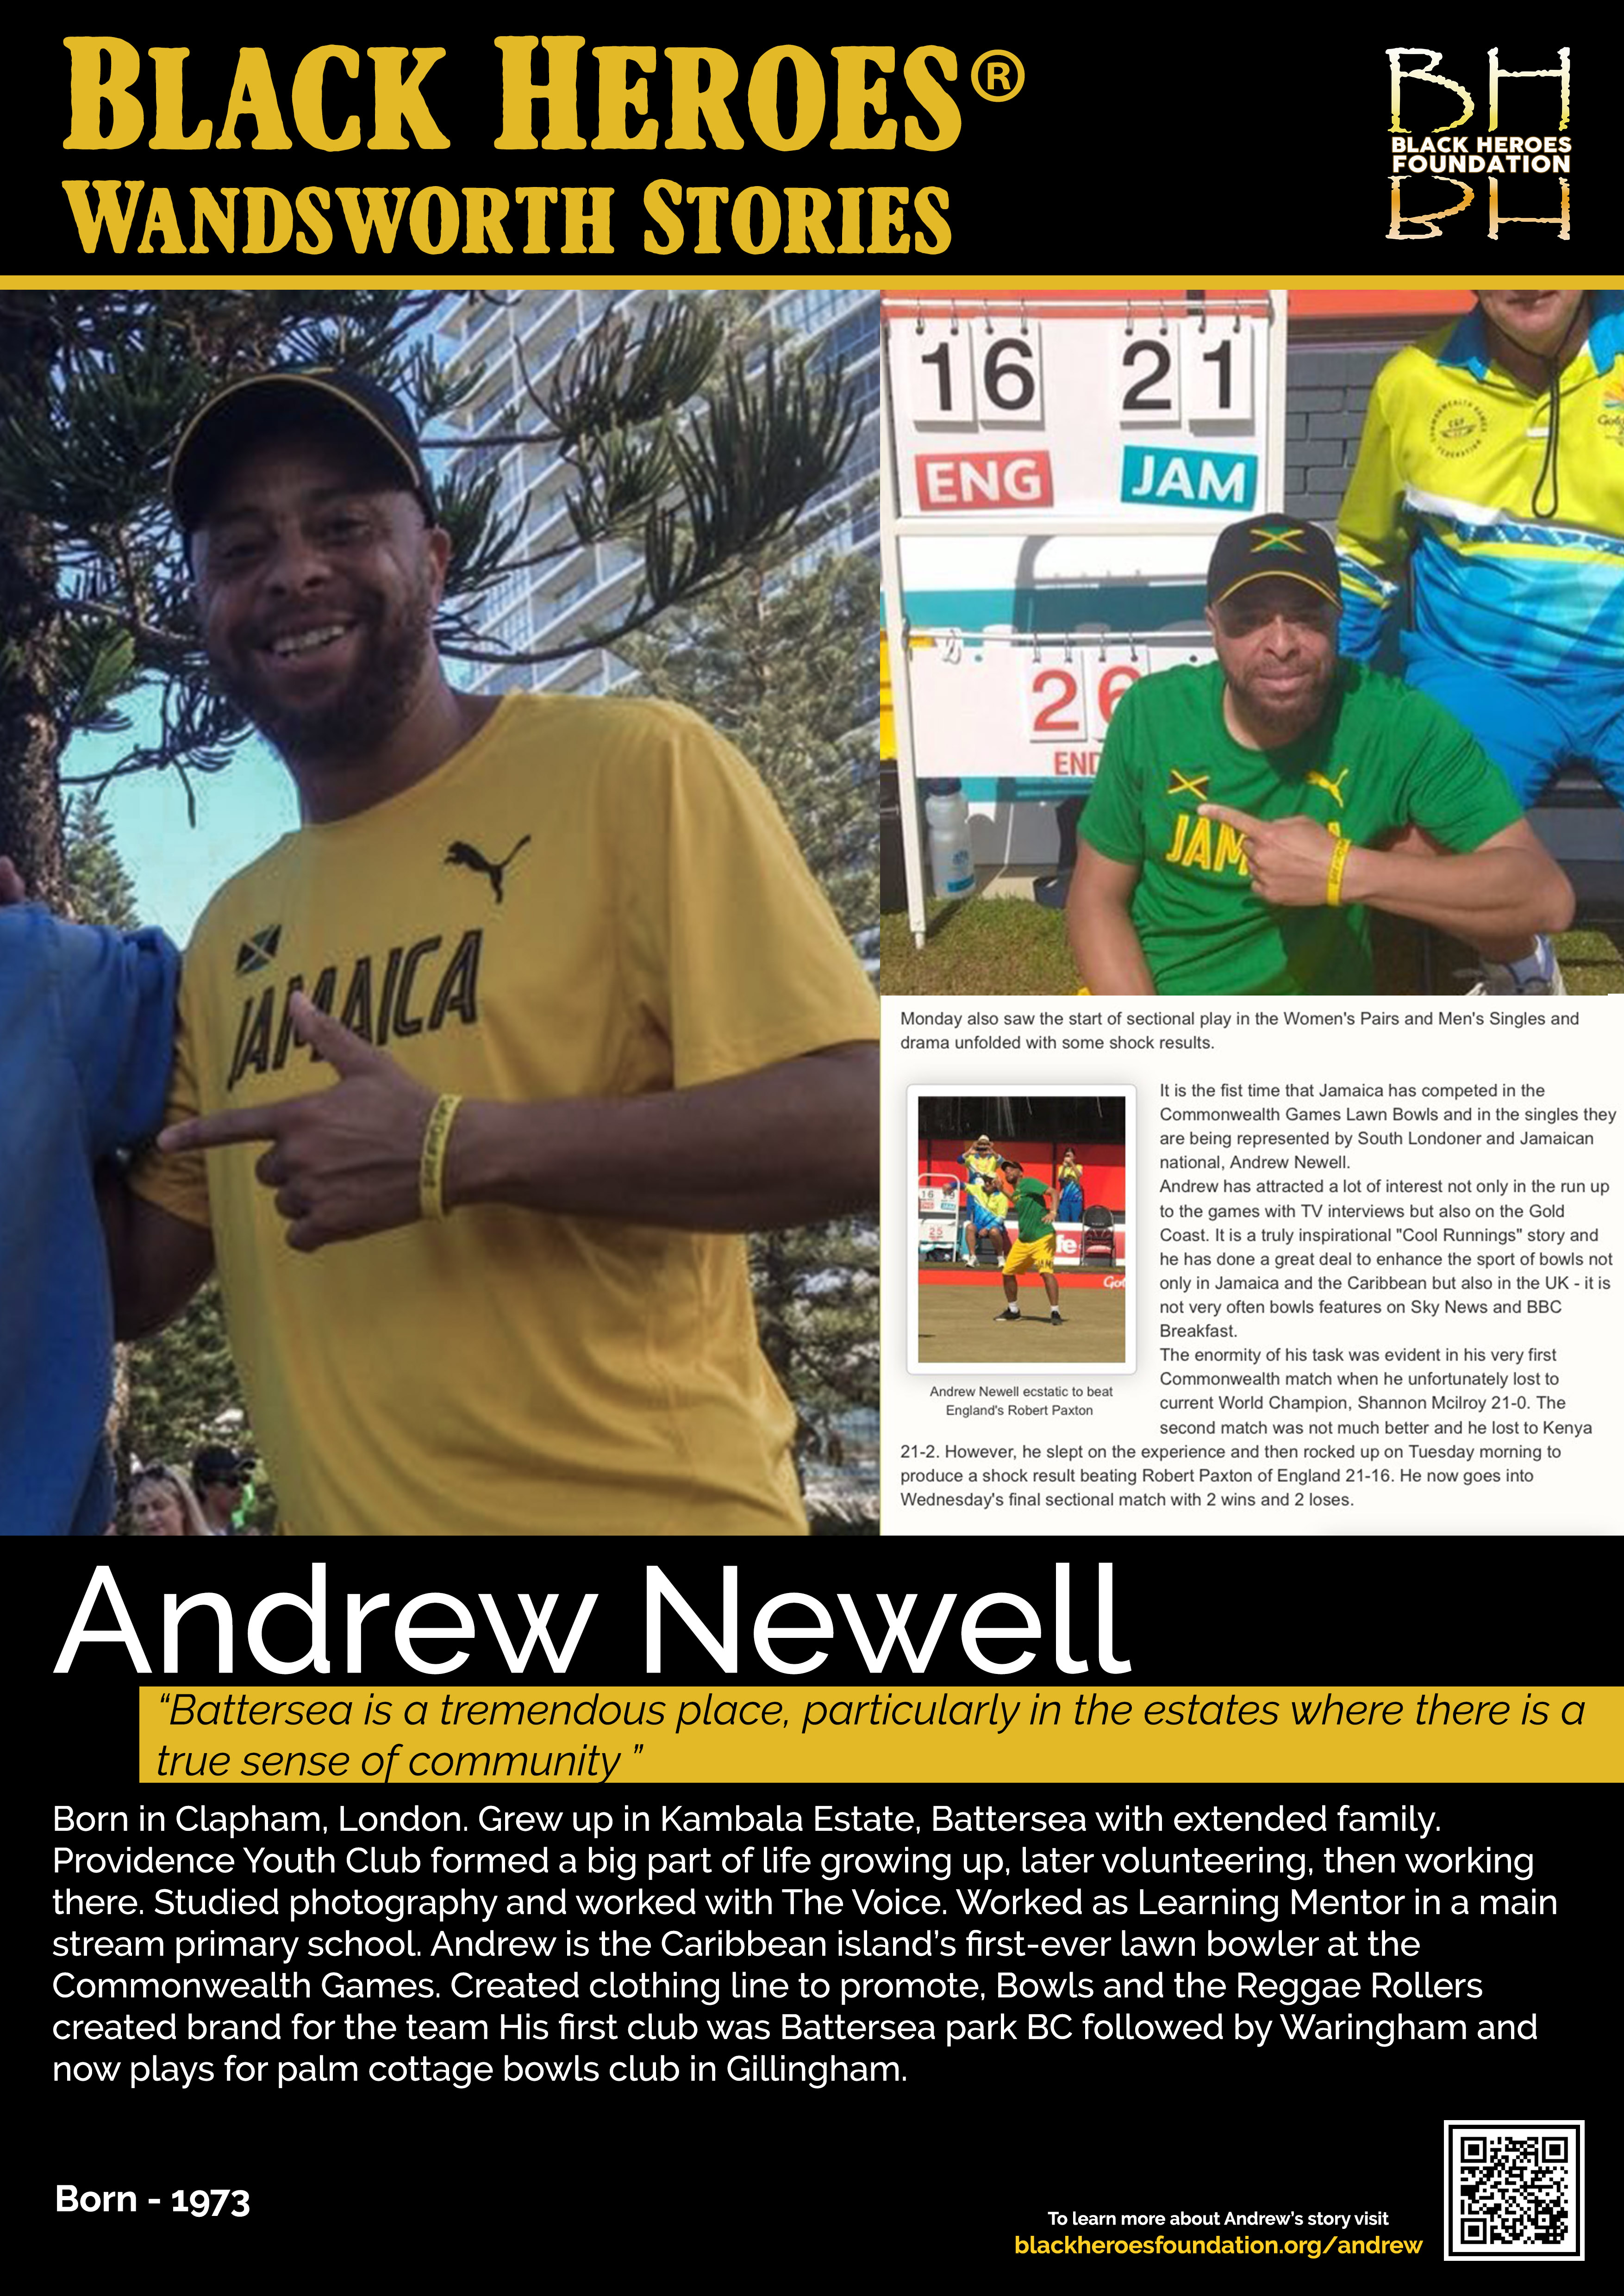 Andrew Newell representing Jamaica at Lawn Bowls in Commonwealth Games